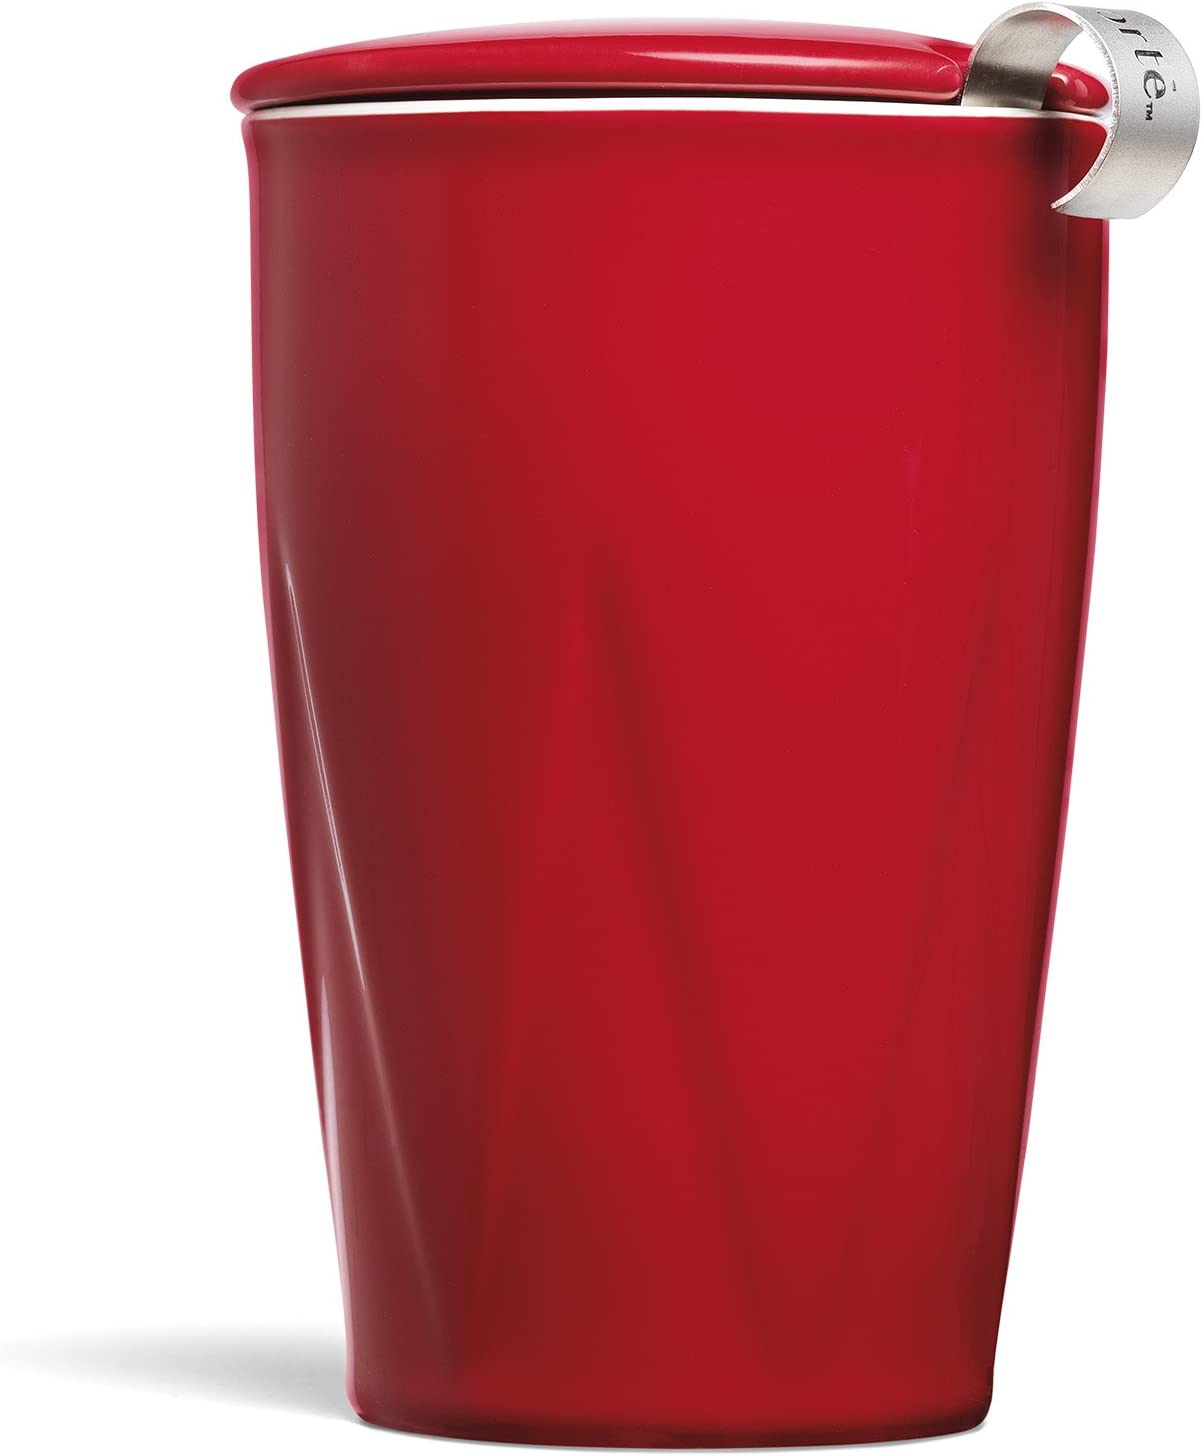 Tea Forte Kati Cup Ceramic Tea Infuser Cup with Infuser Basket and Lid for Steeping, Forte Cranberry